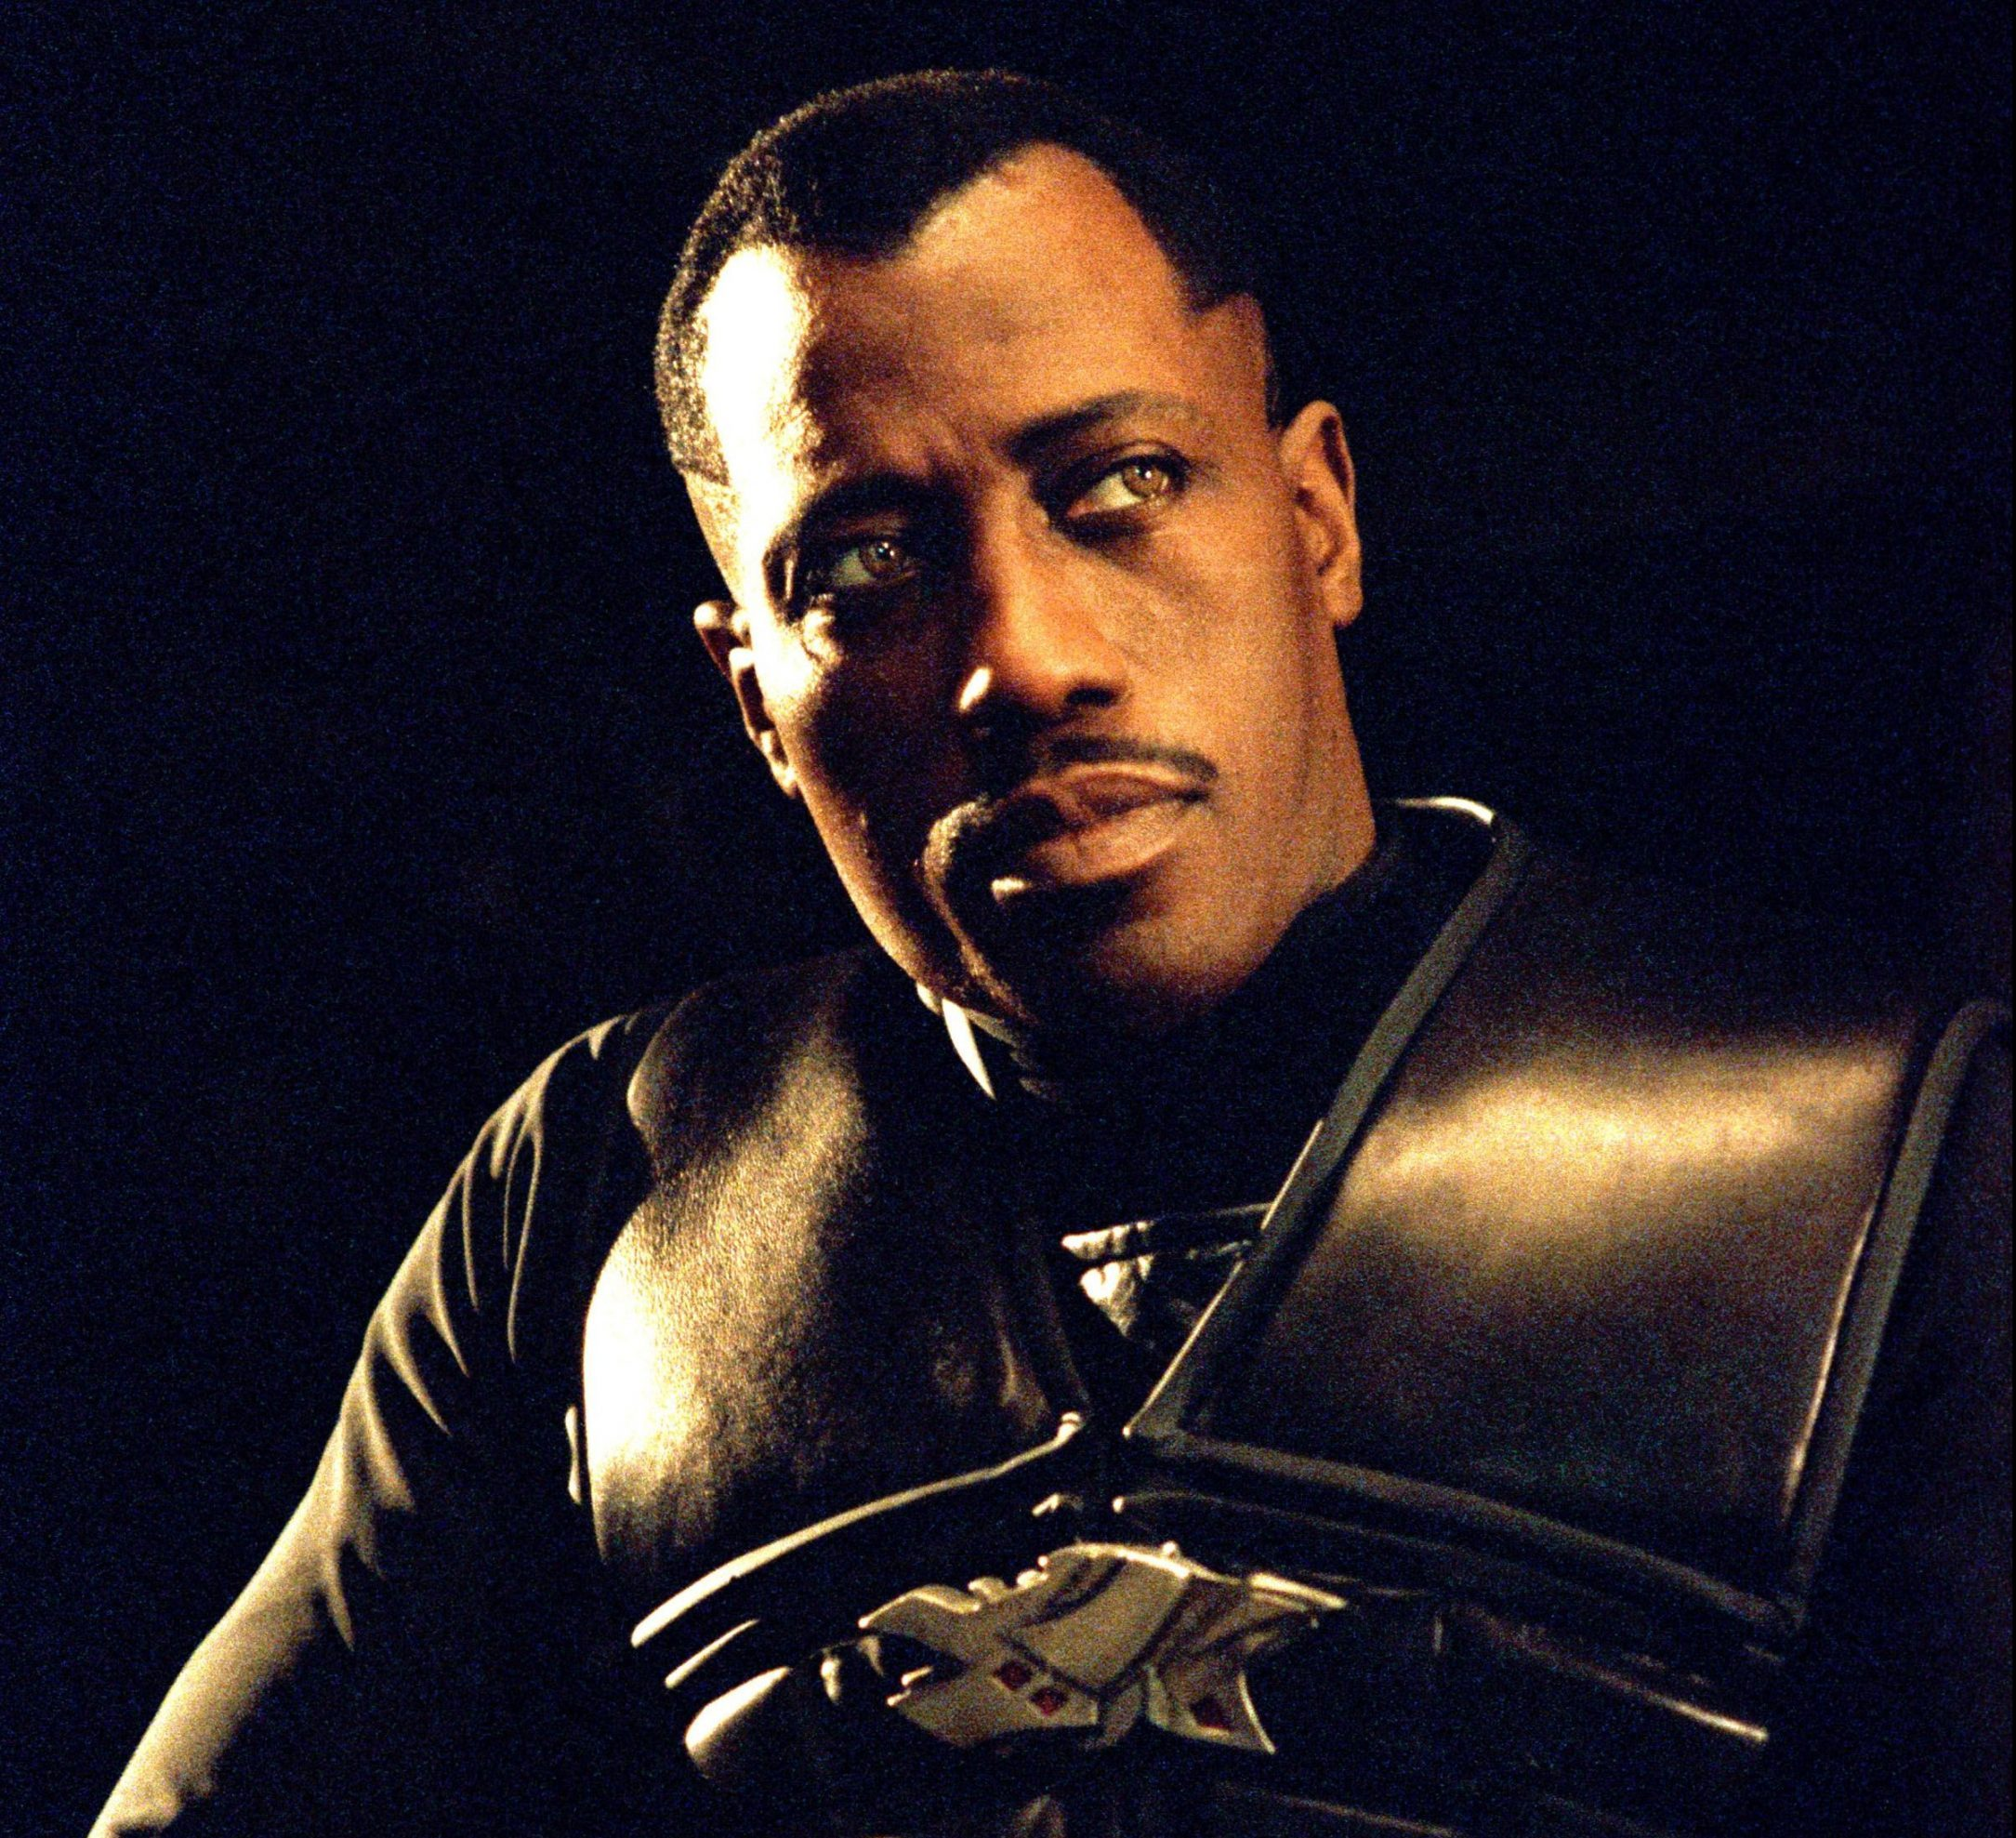 f9f4d0090bd6f56a58d8d739c0d2c203 e1597220772380 scaled e1607085254958 19 Things You Might Not Have Realised About Wesley Snipes